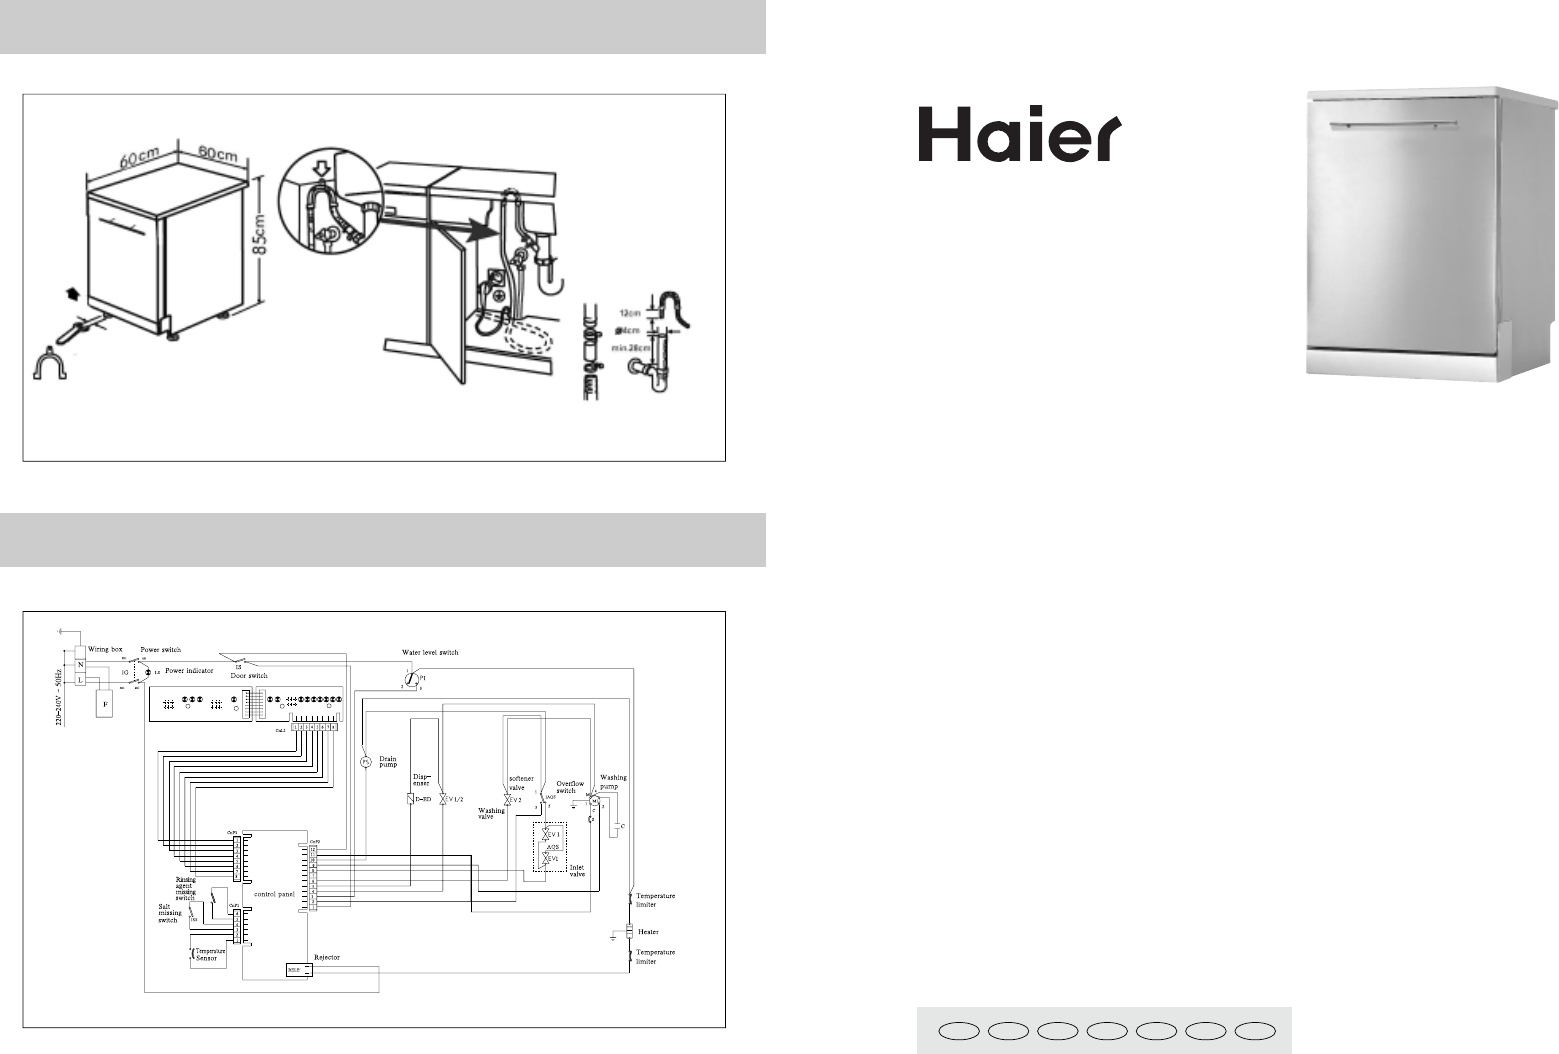 haier appliance wiring diagrams